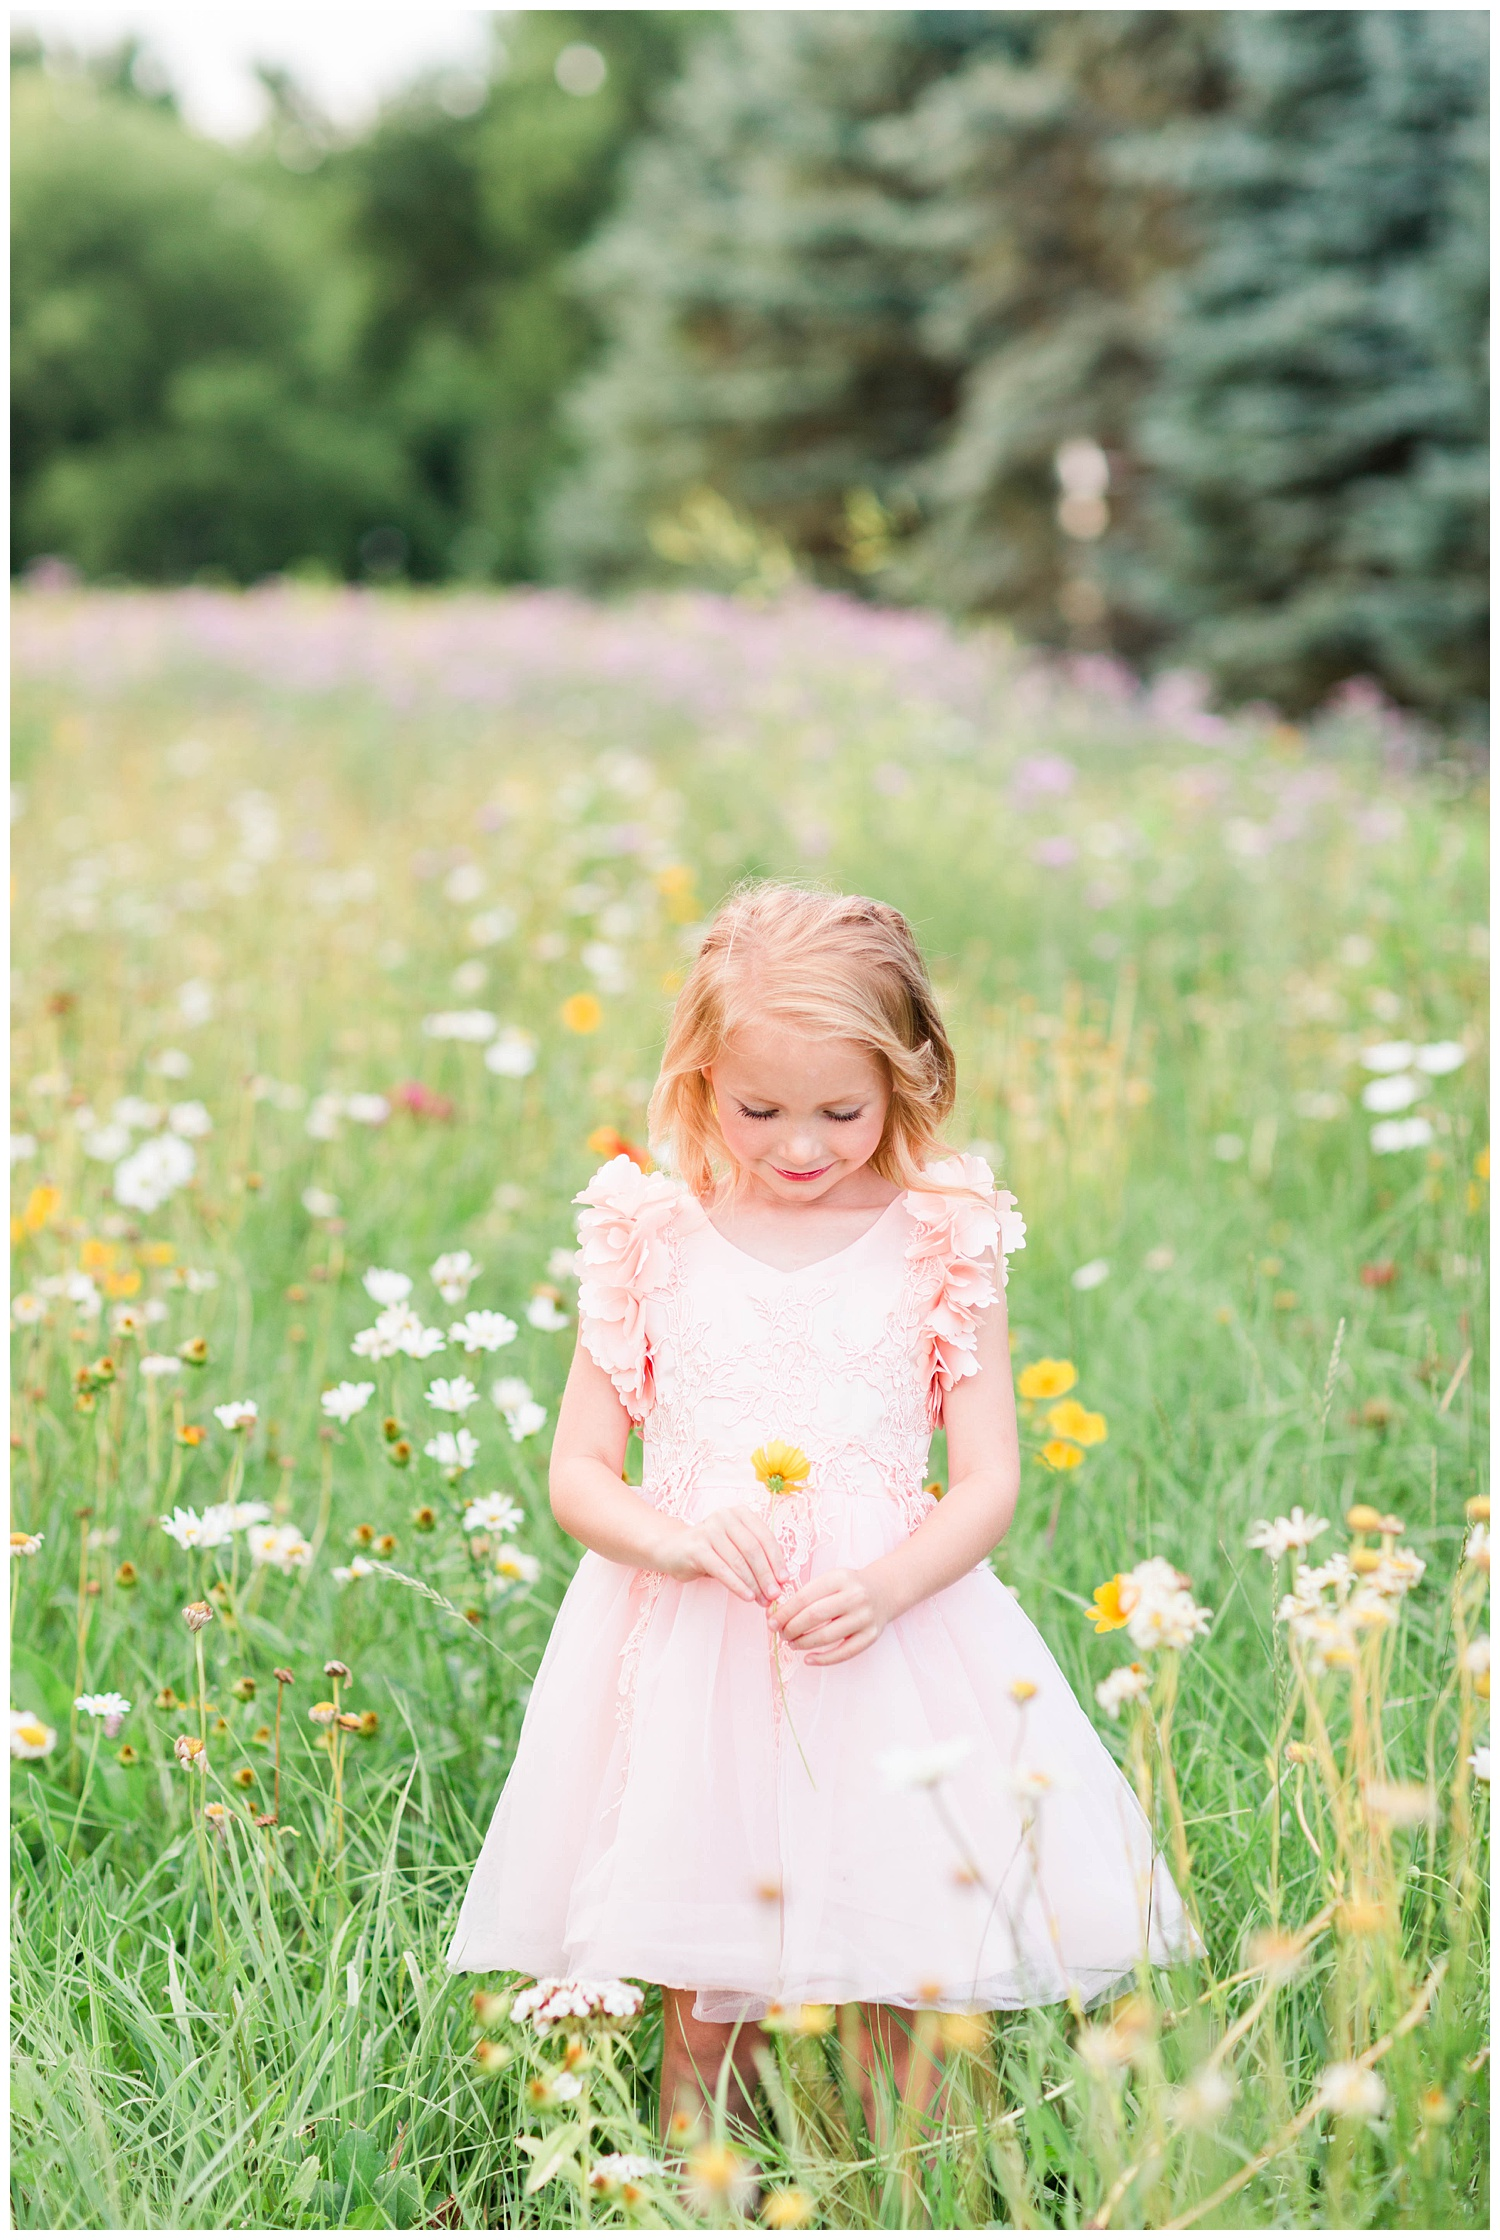 Little Liella stands in a field of wild flowers holding a yellow flower wearing tutu du monde couture dress by Trish Scully   CB Studio